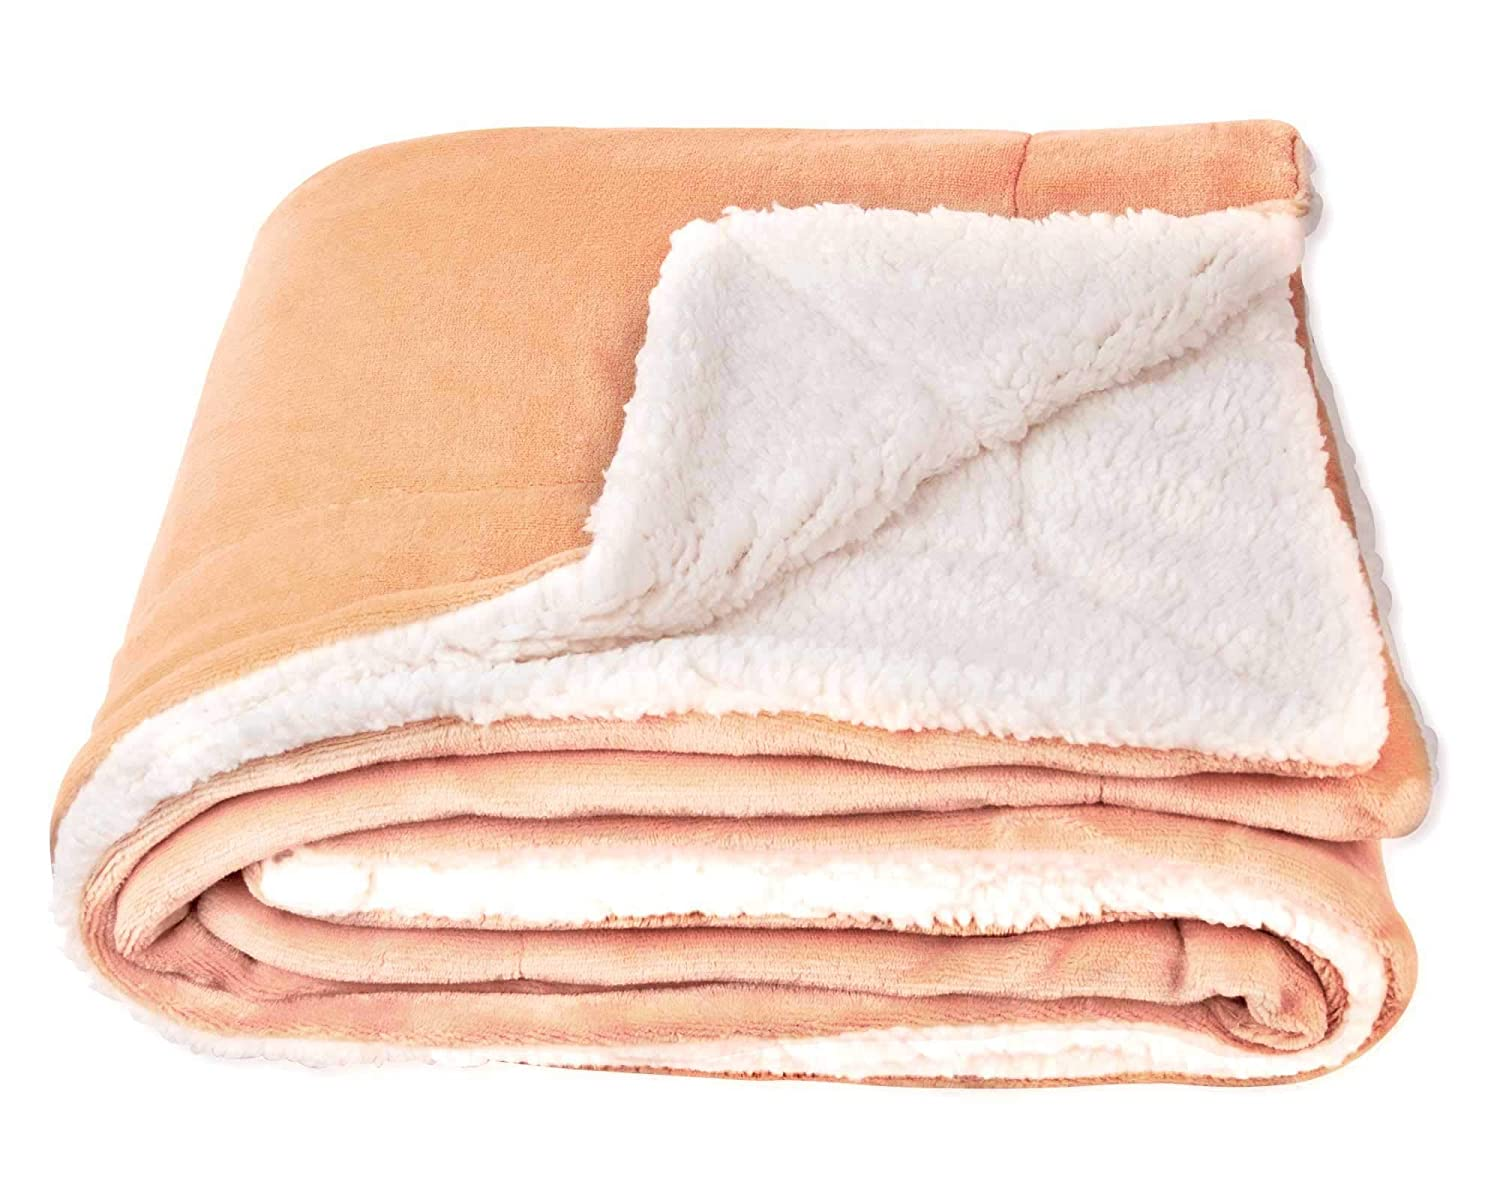 SOCHOW Sherpa Fleece Throw Blanket, Double-Sided Super Soft Luxurious Plush Blanket 50